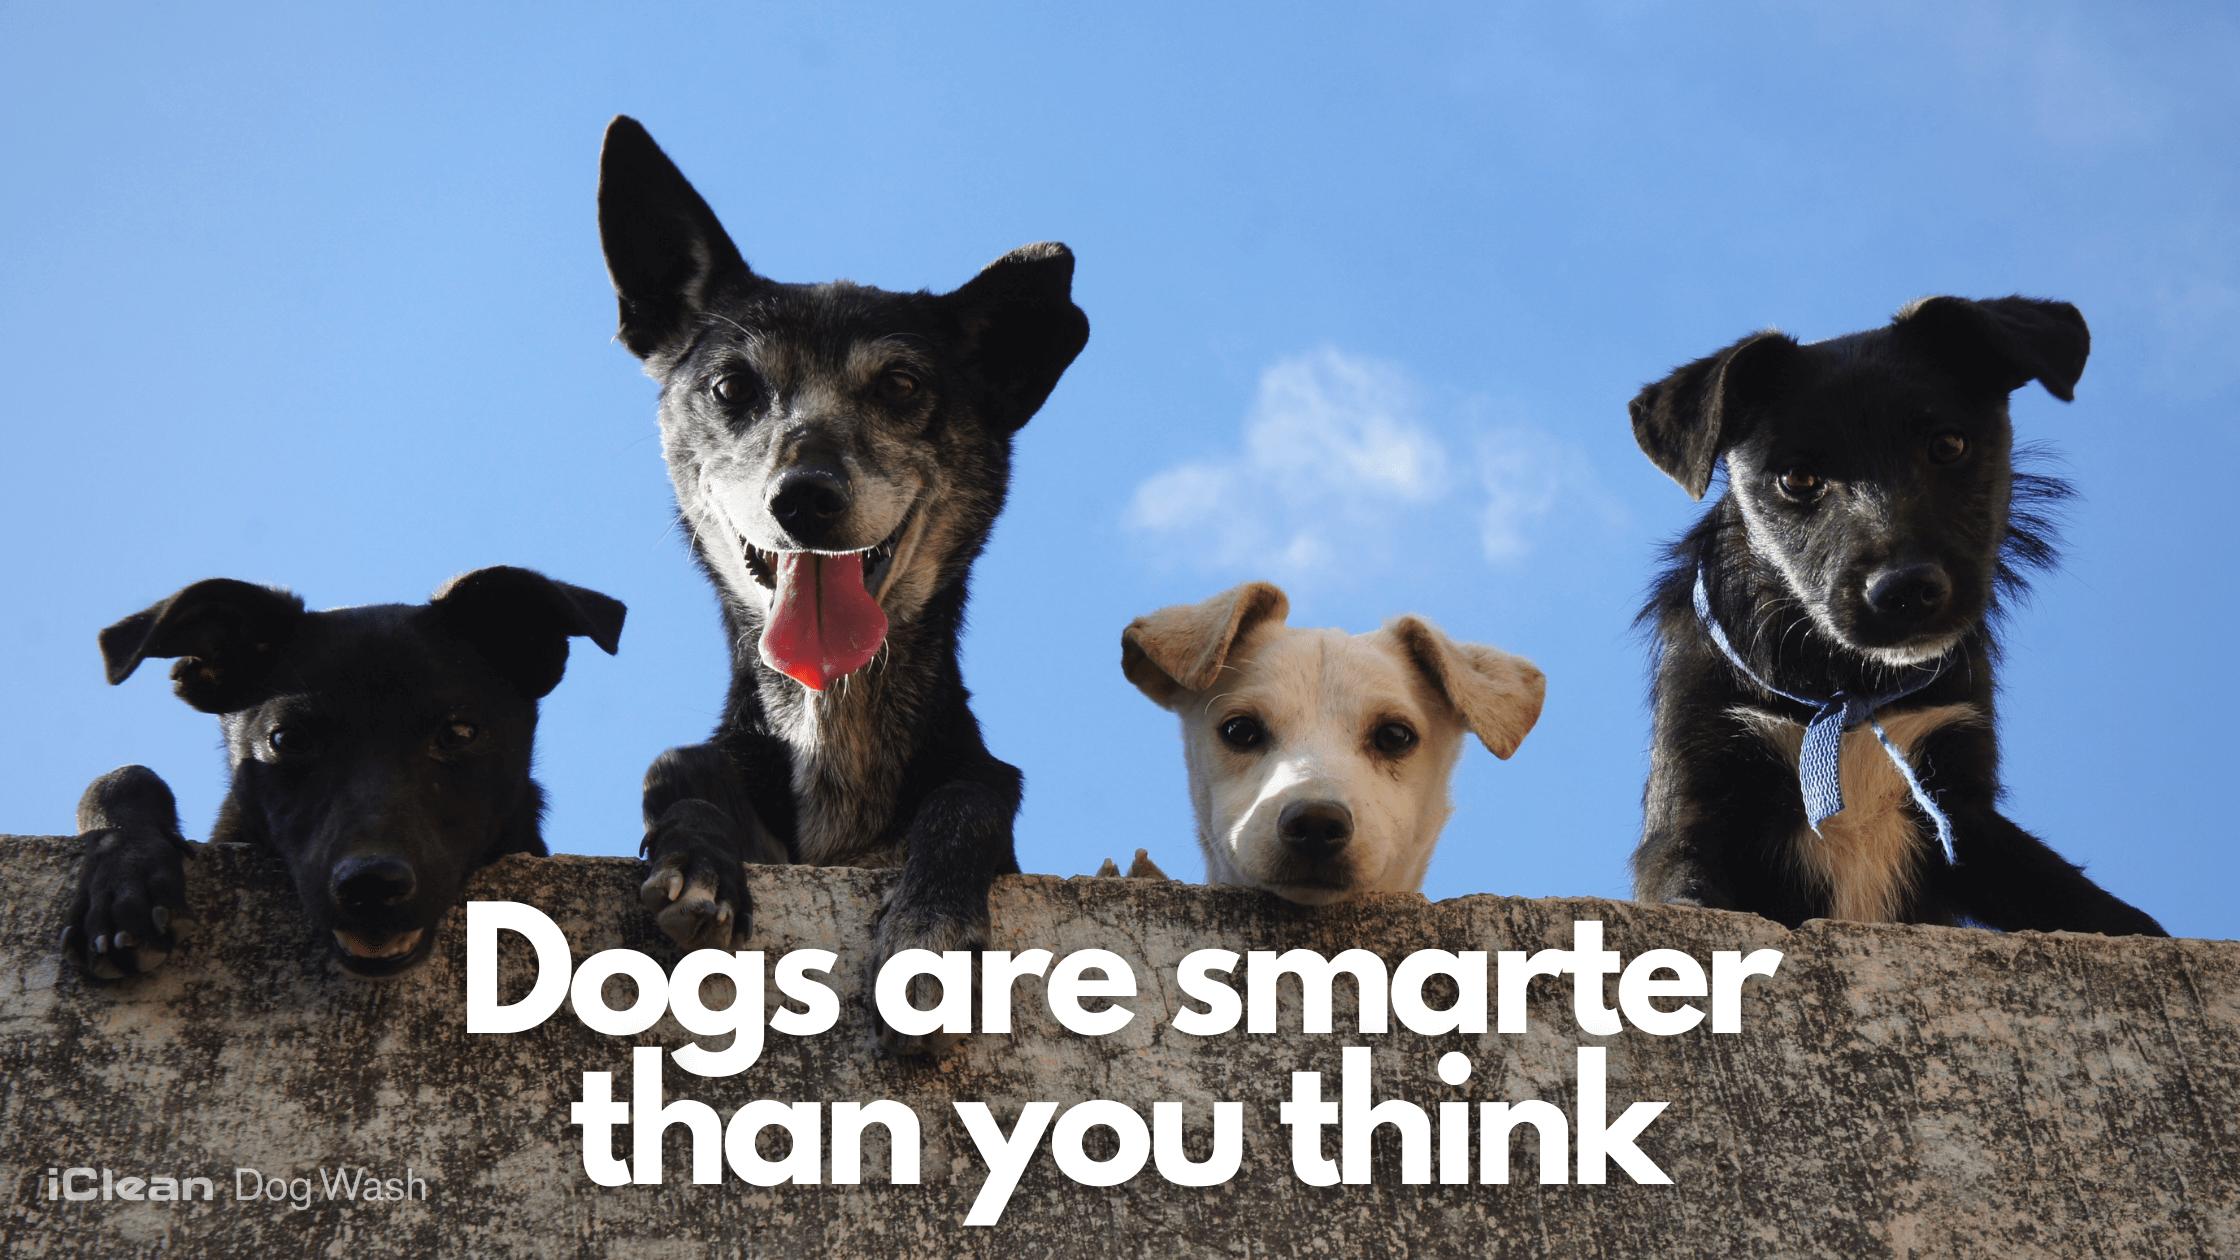 Dogs are smarter than you think